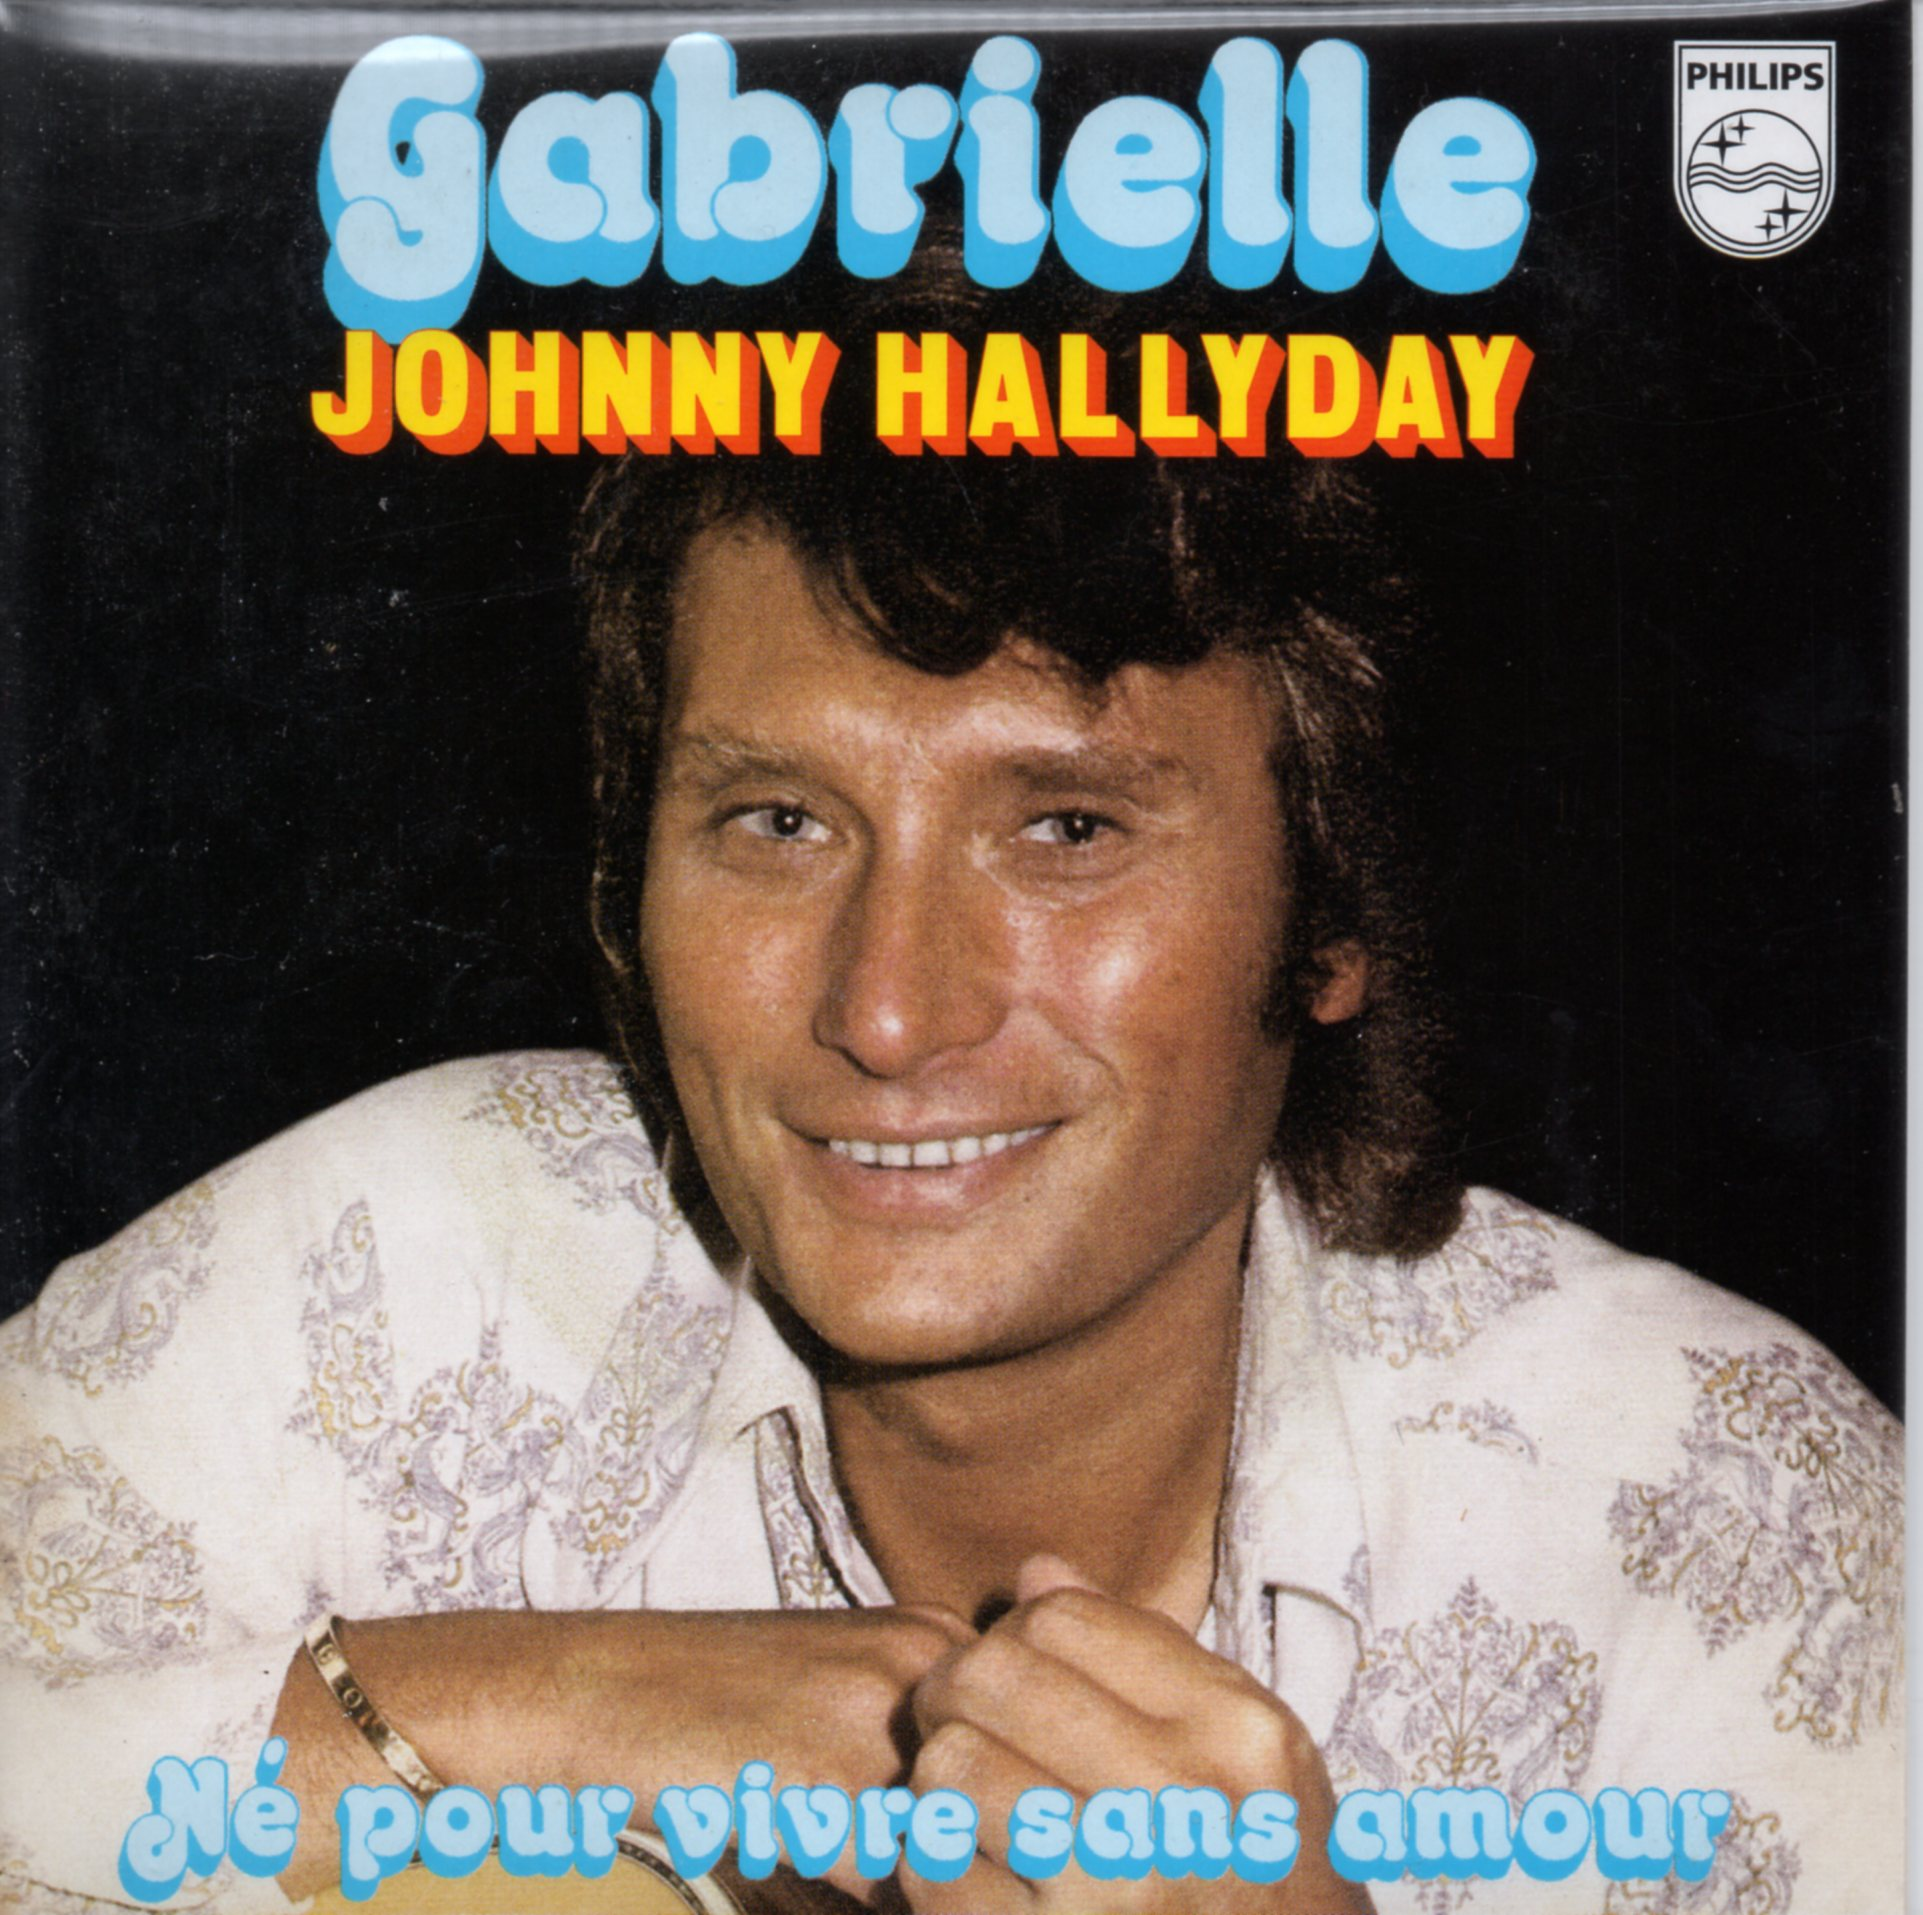 JOHNNY HALLYDAY - Gabrielle 2-track CARD SLEEVE - CD single